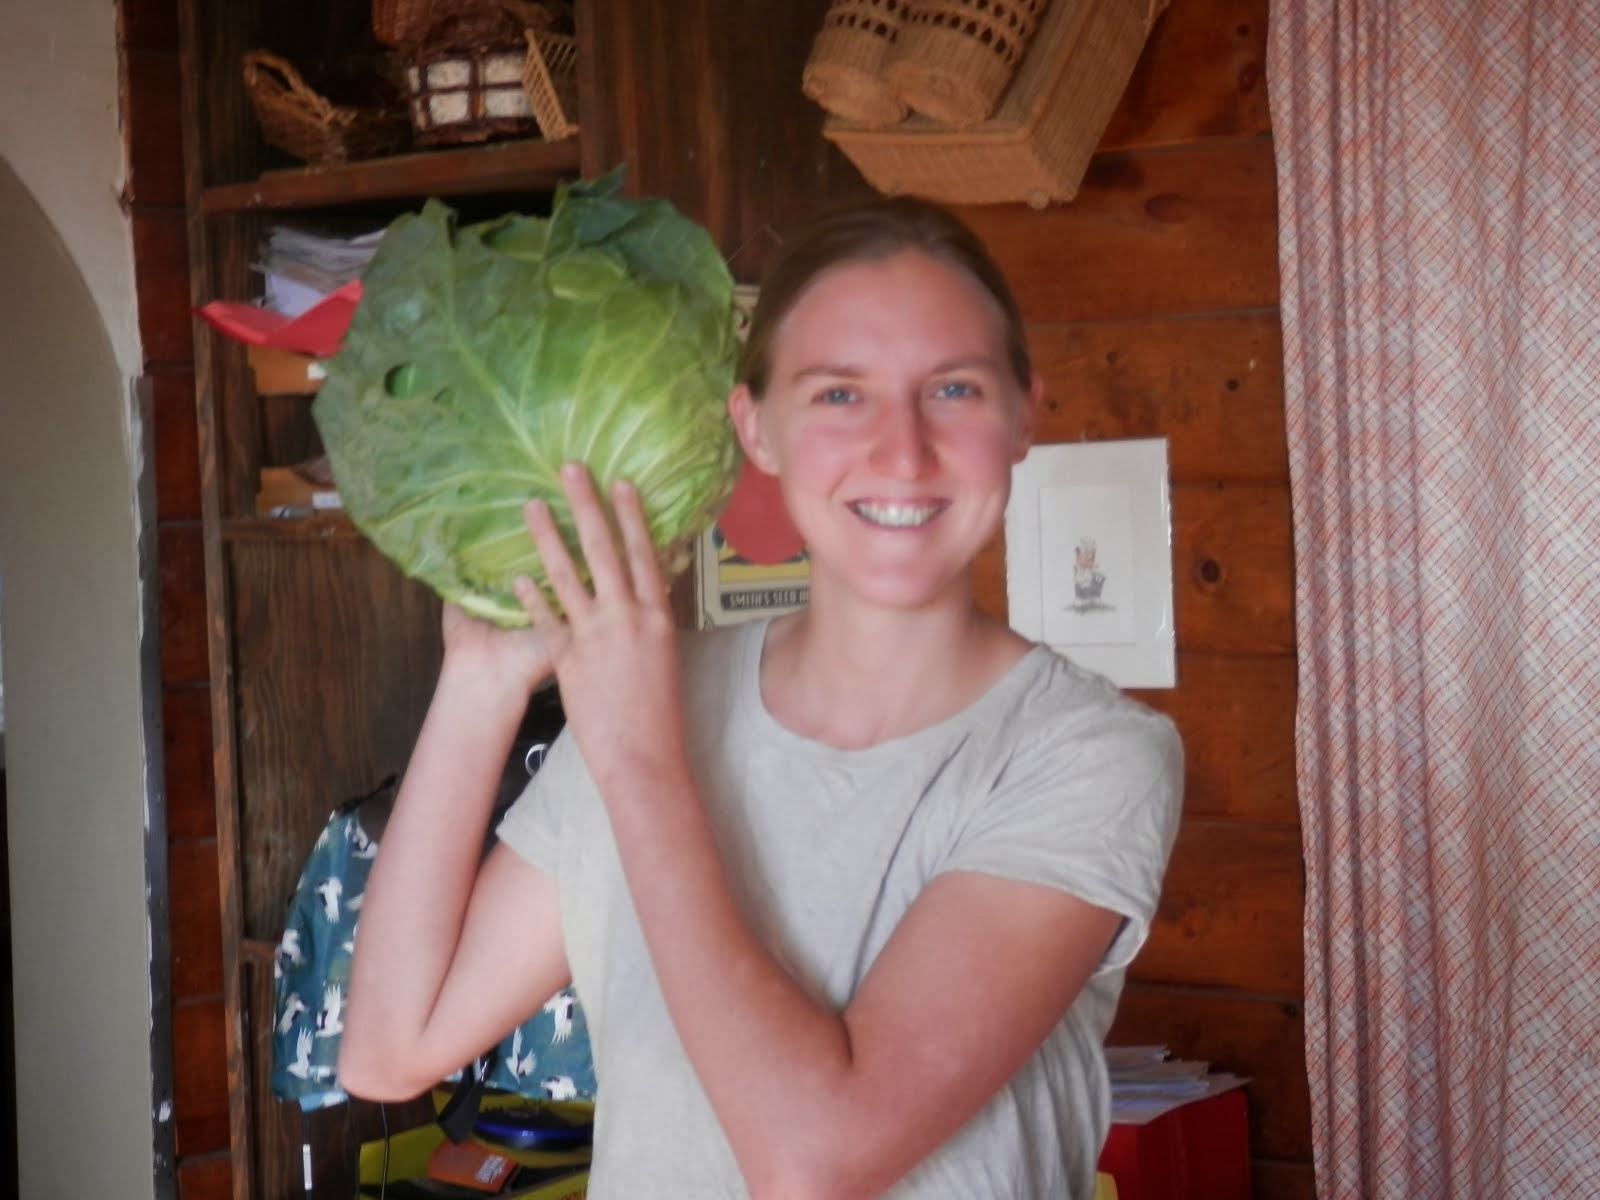 Amber brings cabbage for us.